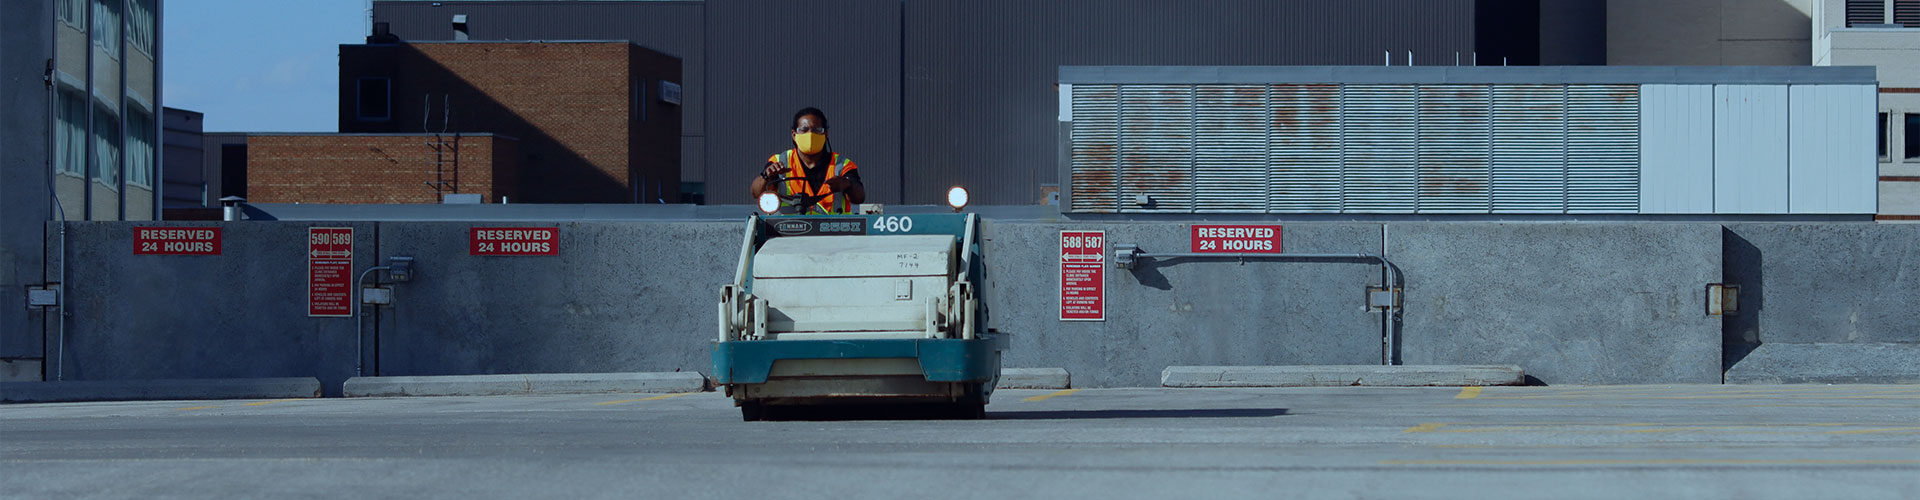 Parking-lot-cleaning-and-sweeping-winnipeg